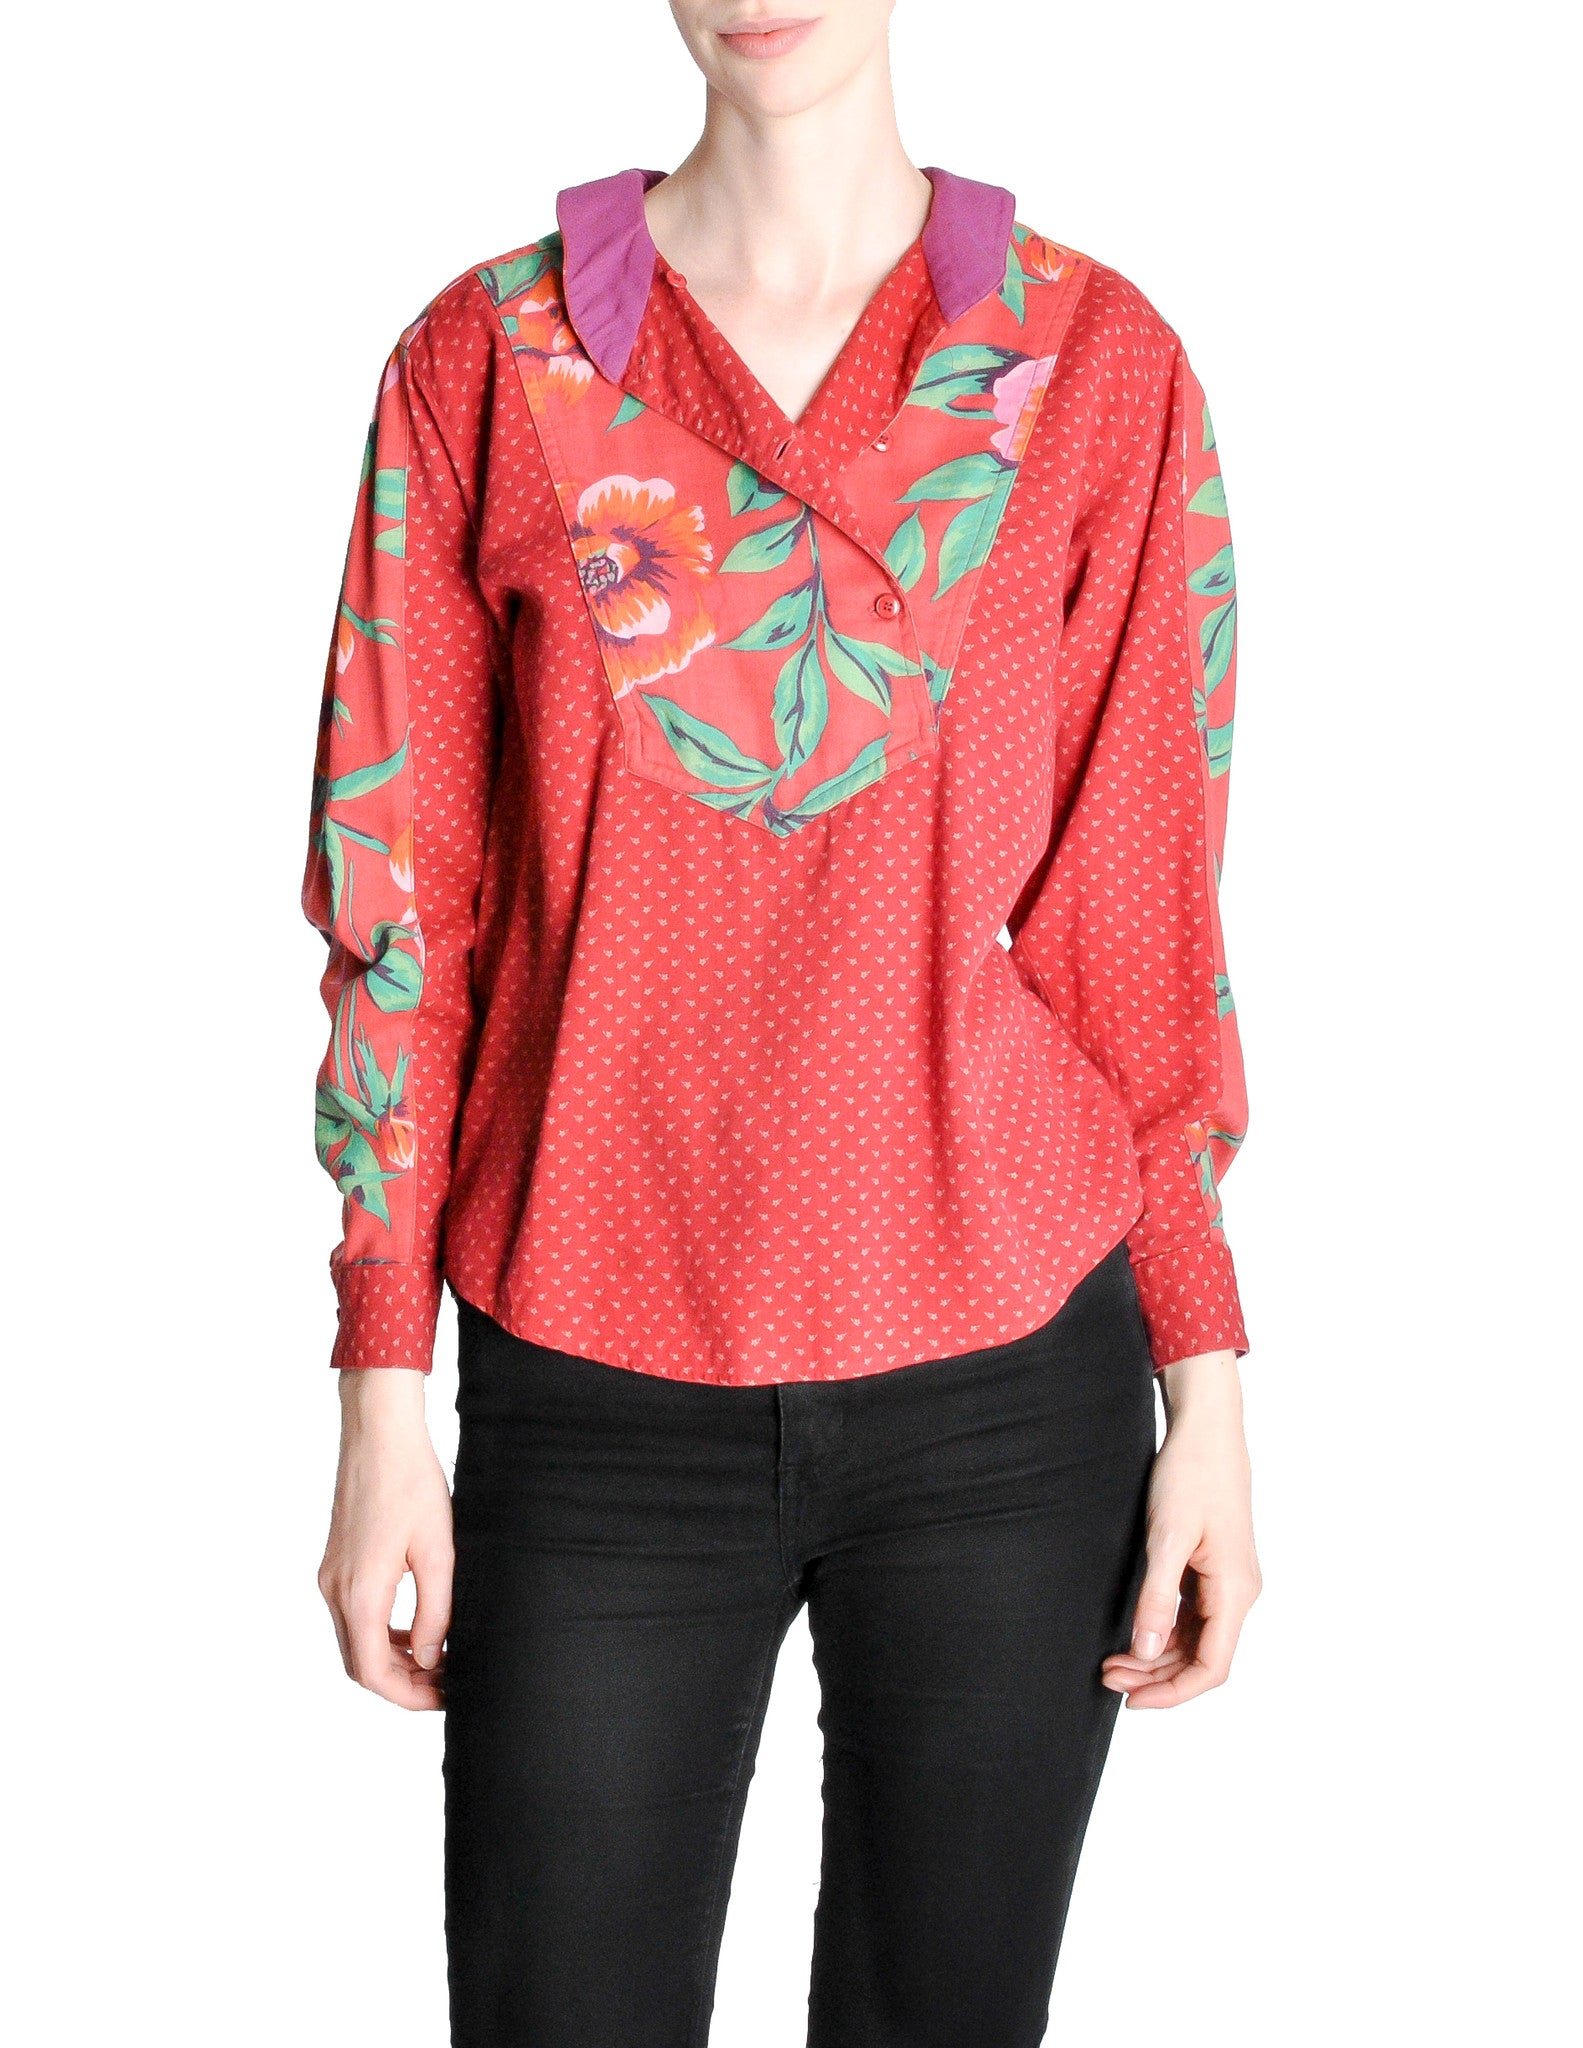 Kenzo Vintage Floral Print Long Sleeve Top - Amarcord Vintage Fashion  - 1